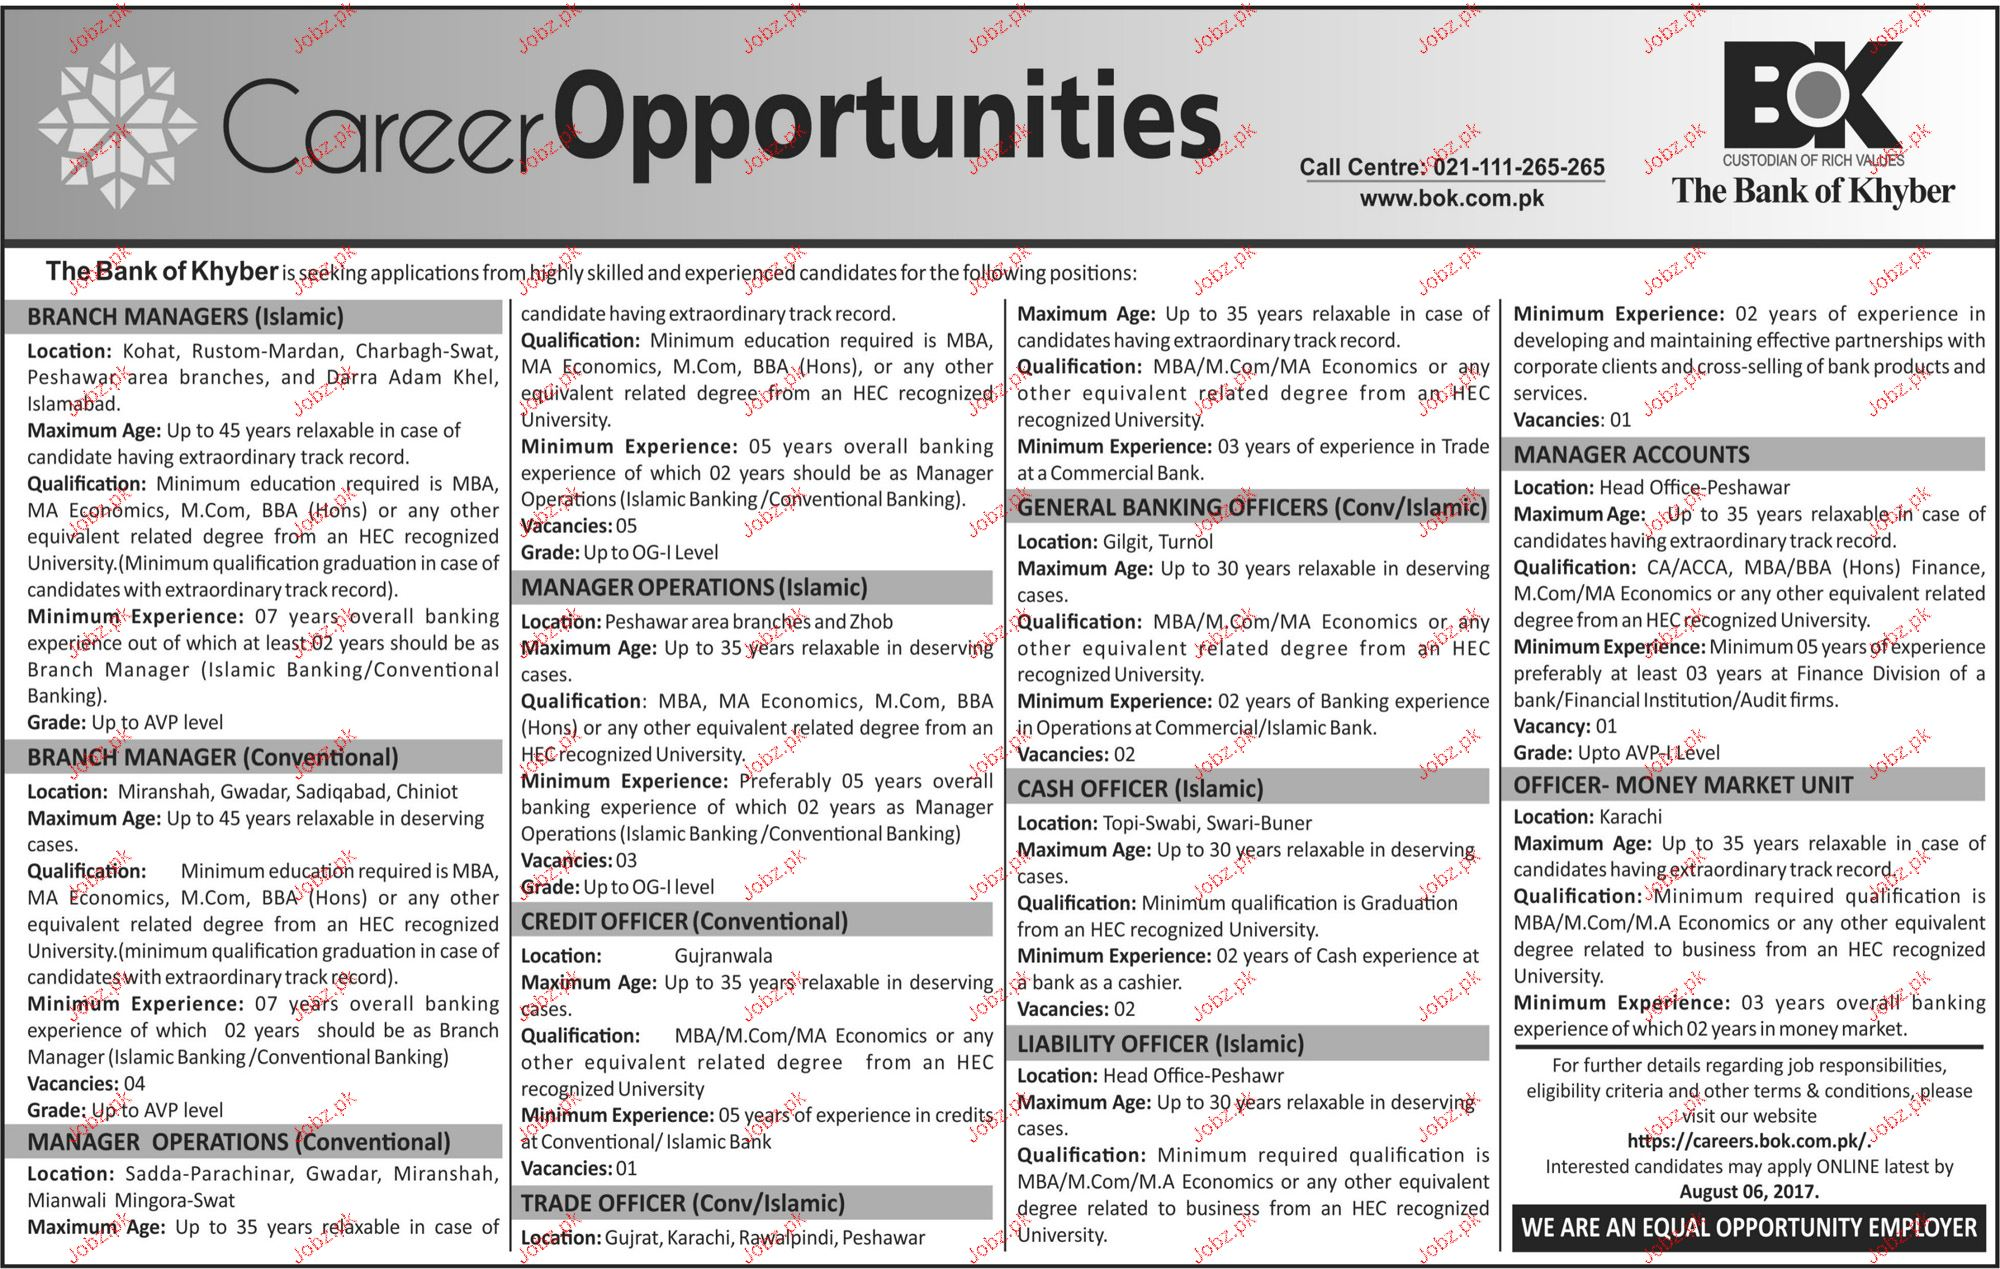 internship report the bank of khyber Bank of khyber (bok) jobs 2018 air lines all types army & police atomic energy banking clerks jobs engineers jobs fpsc government internship jobs jobs in ajk jobs.